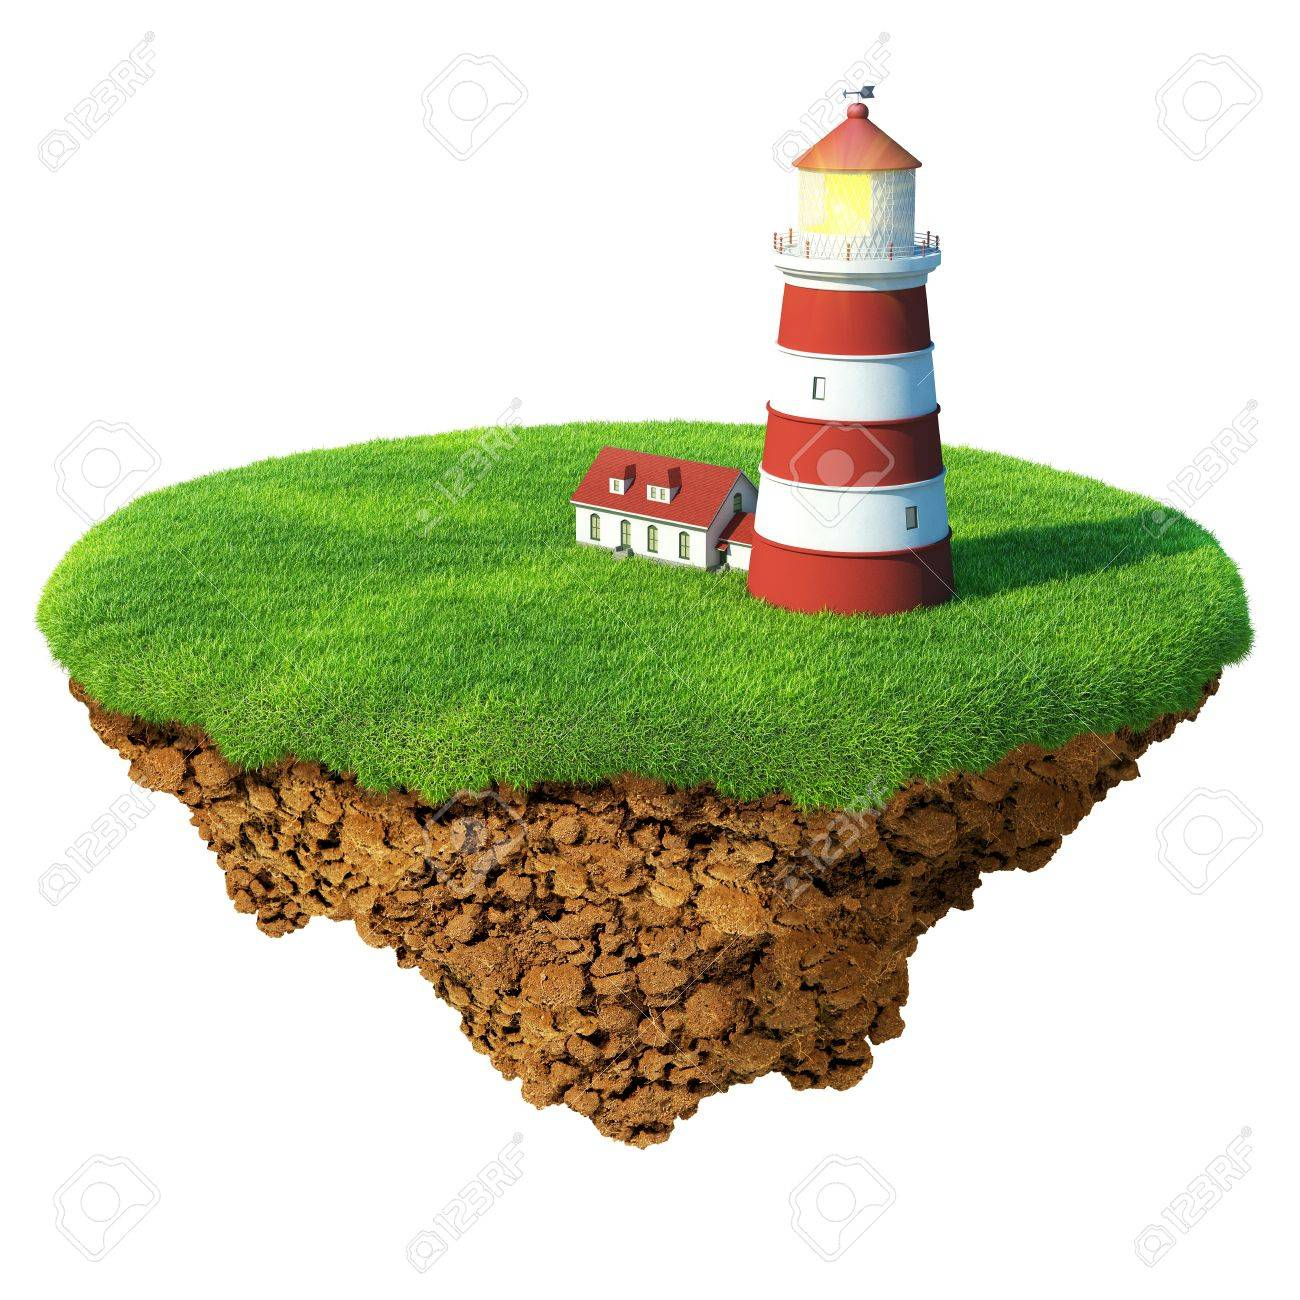 Lighthouse on the island. Detailed ground in the base. Concept of success and happiness, idyllic ecological lifestyle. Stock Photo - 8996092